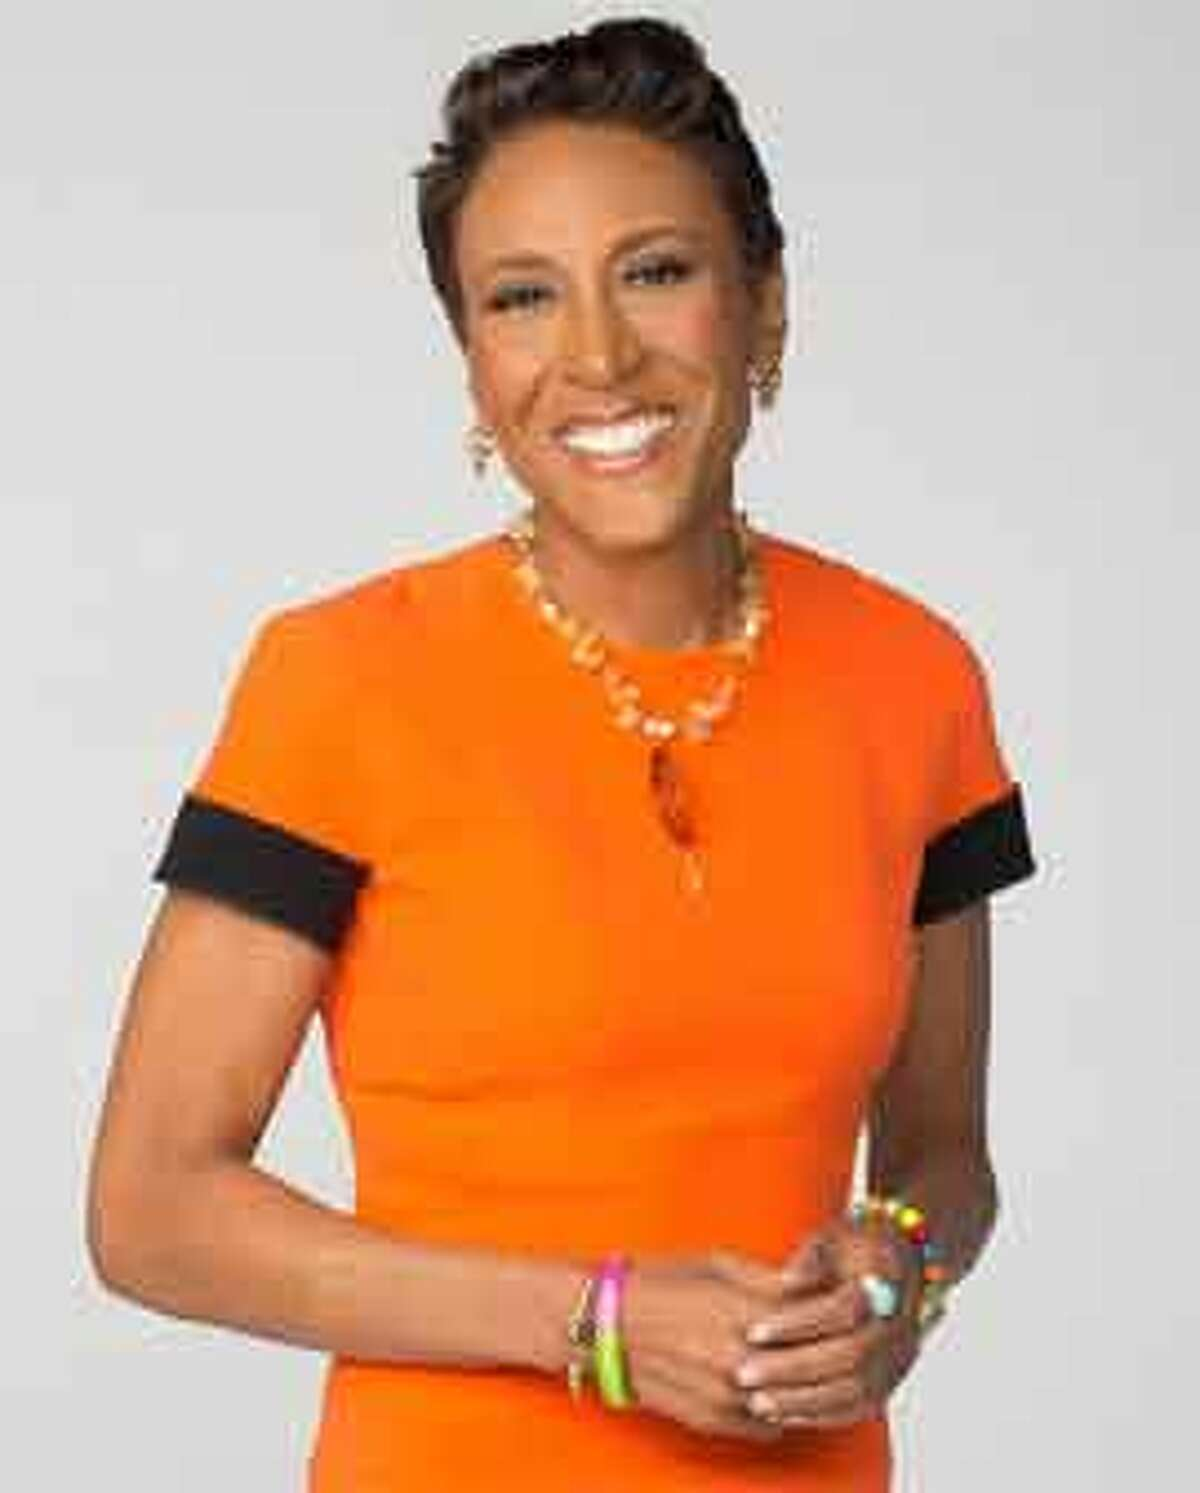 Robin Roberts of